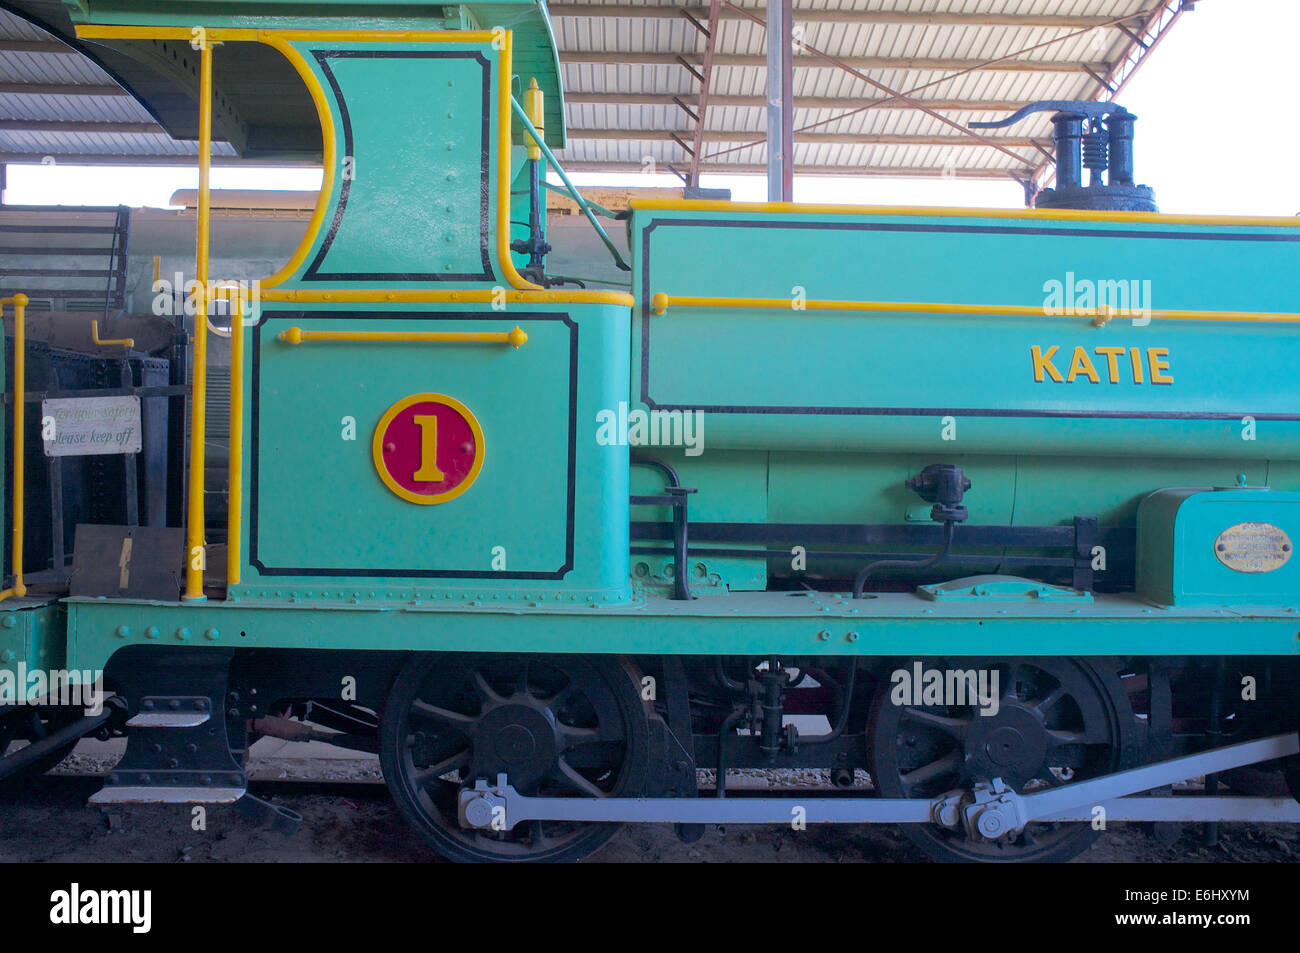 Katie a 3' 6' gauge 0-6-0ST + T steam locomotive built in 1880 preserved at the Railway Museum, Bassendean, - Stock Image